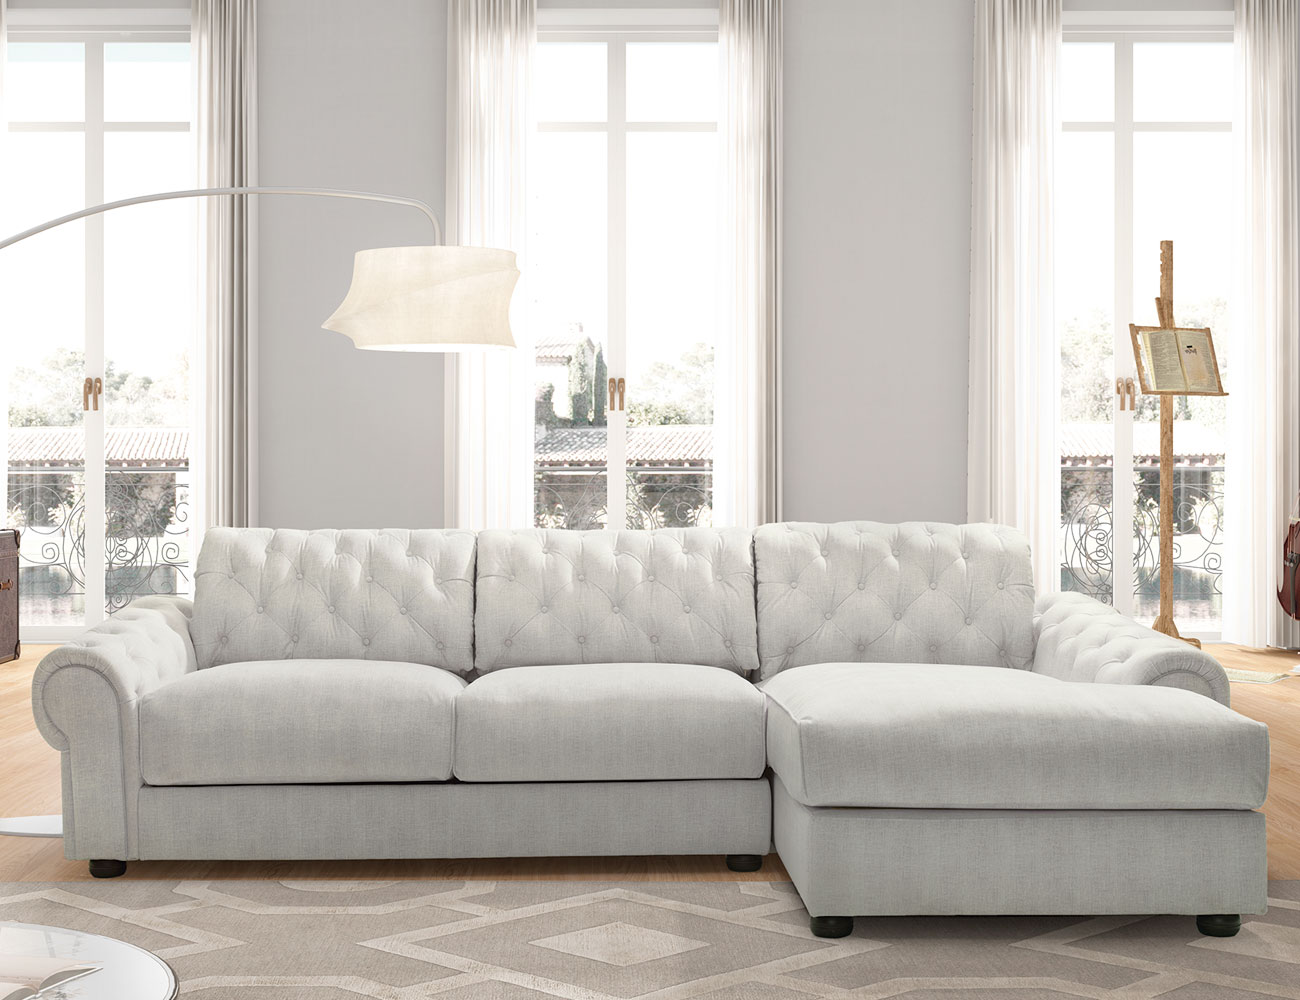 Sofa chaiselongue gran lujo decorativo capitone blanco tela